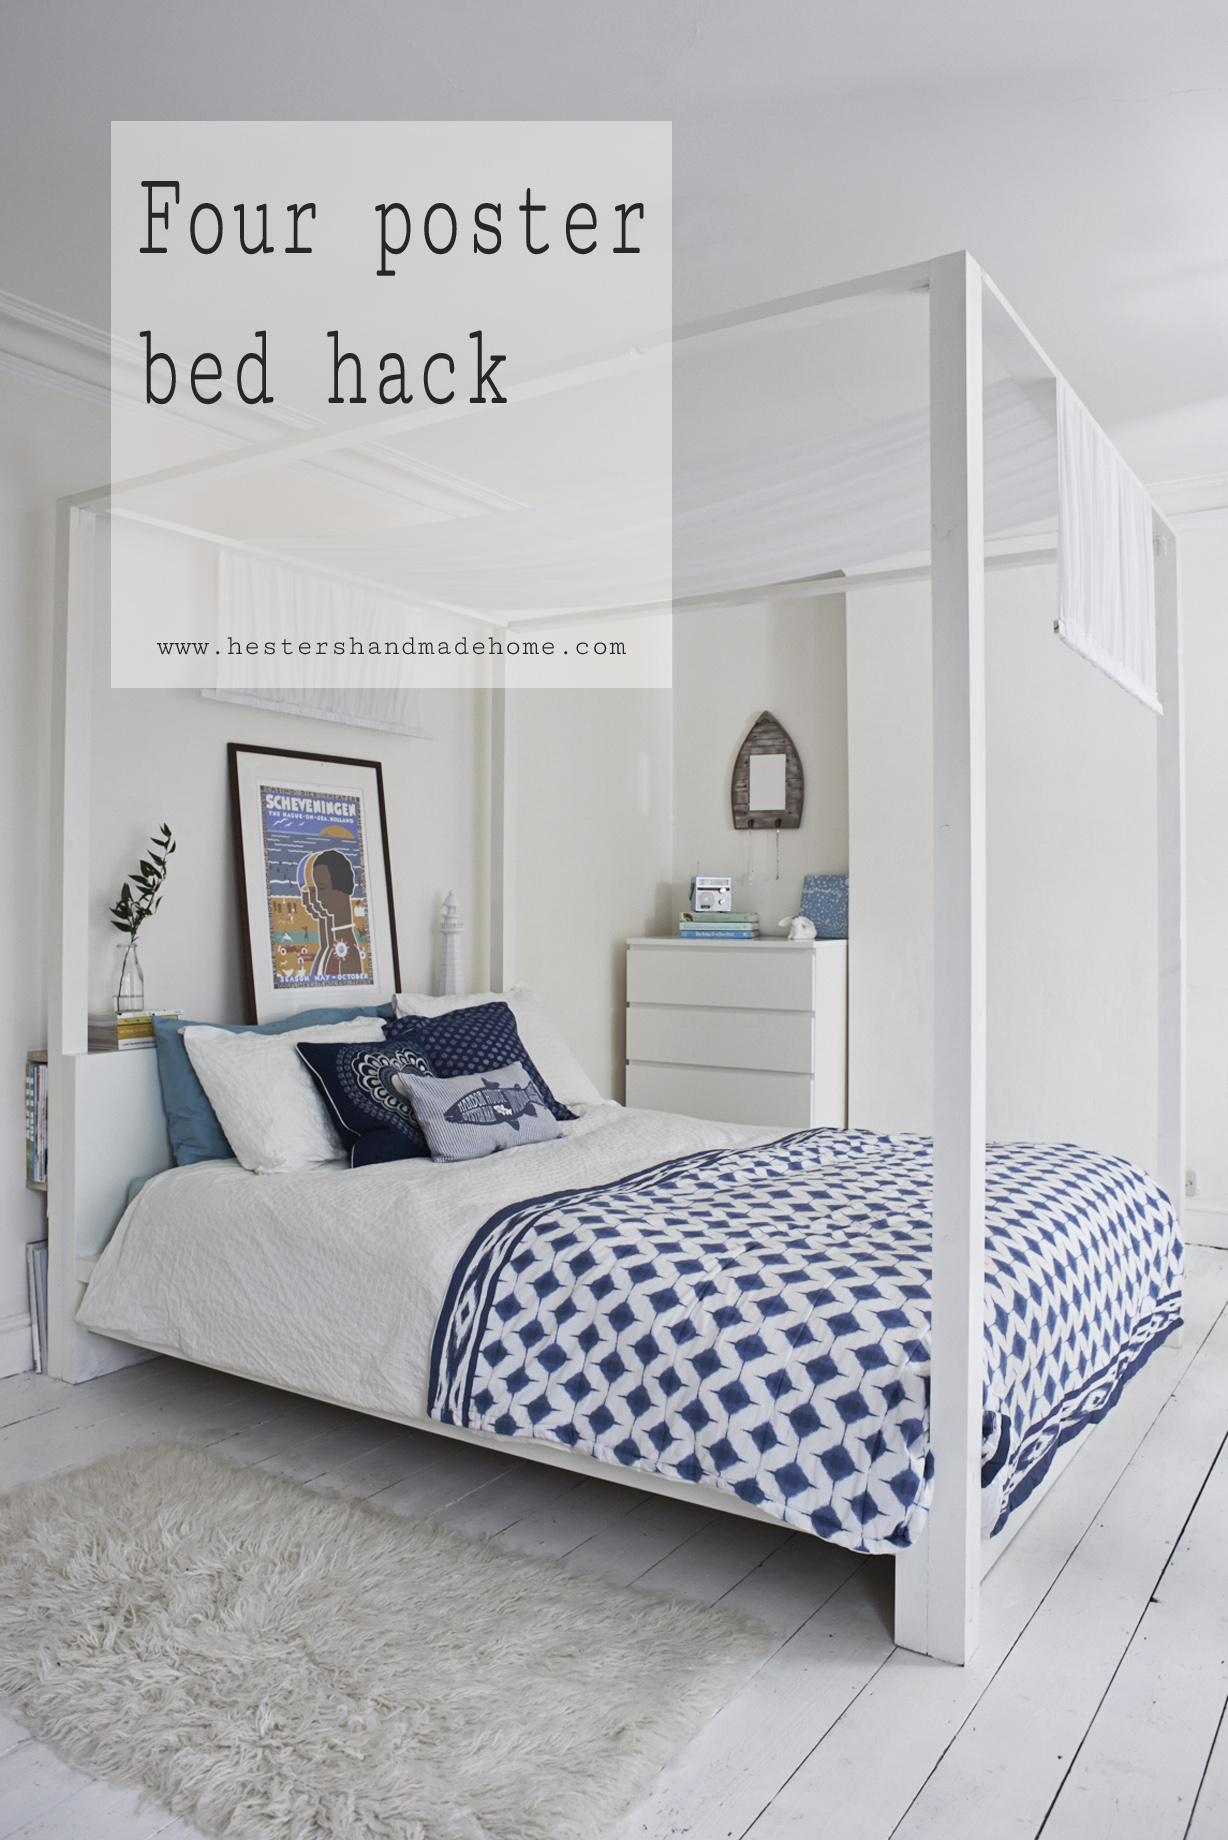 Ikea hack malm bed into a four poster, tutorial by Hester's handmade home